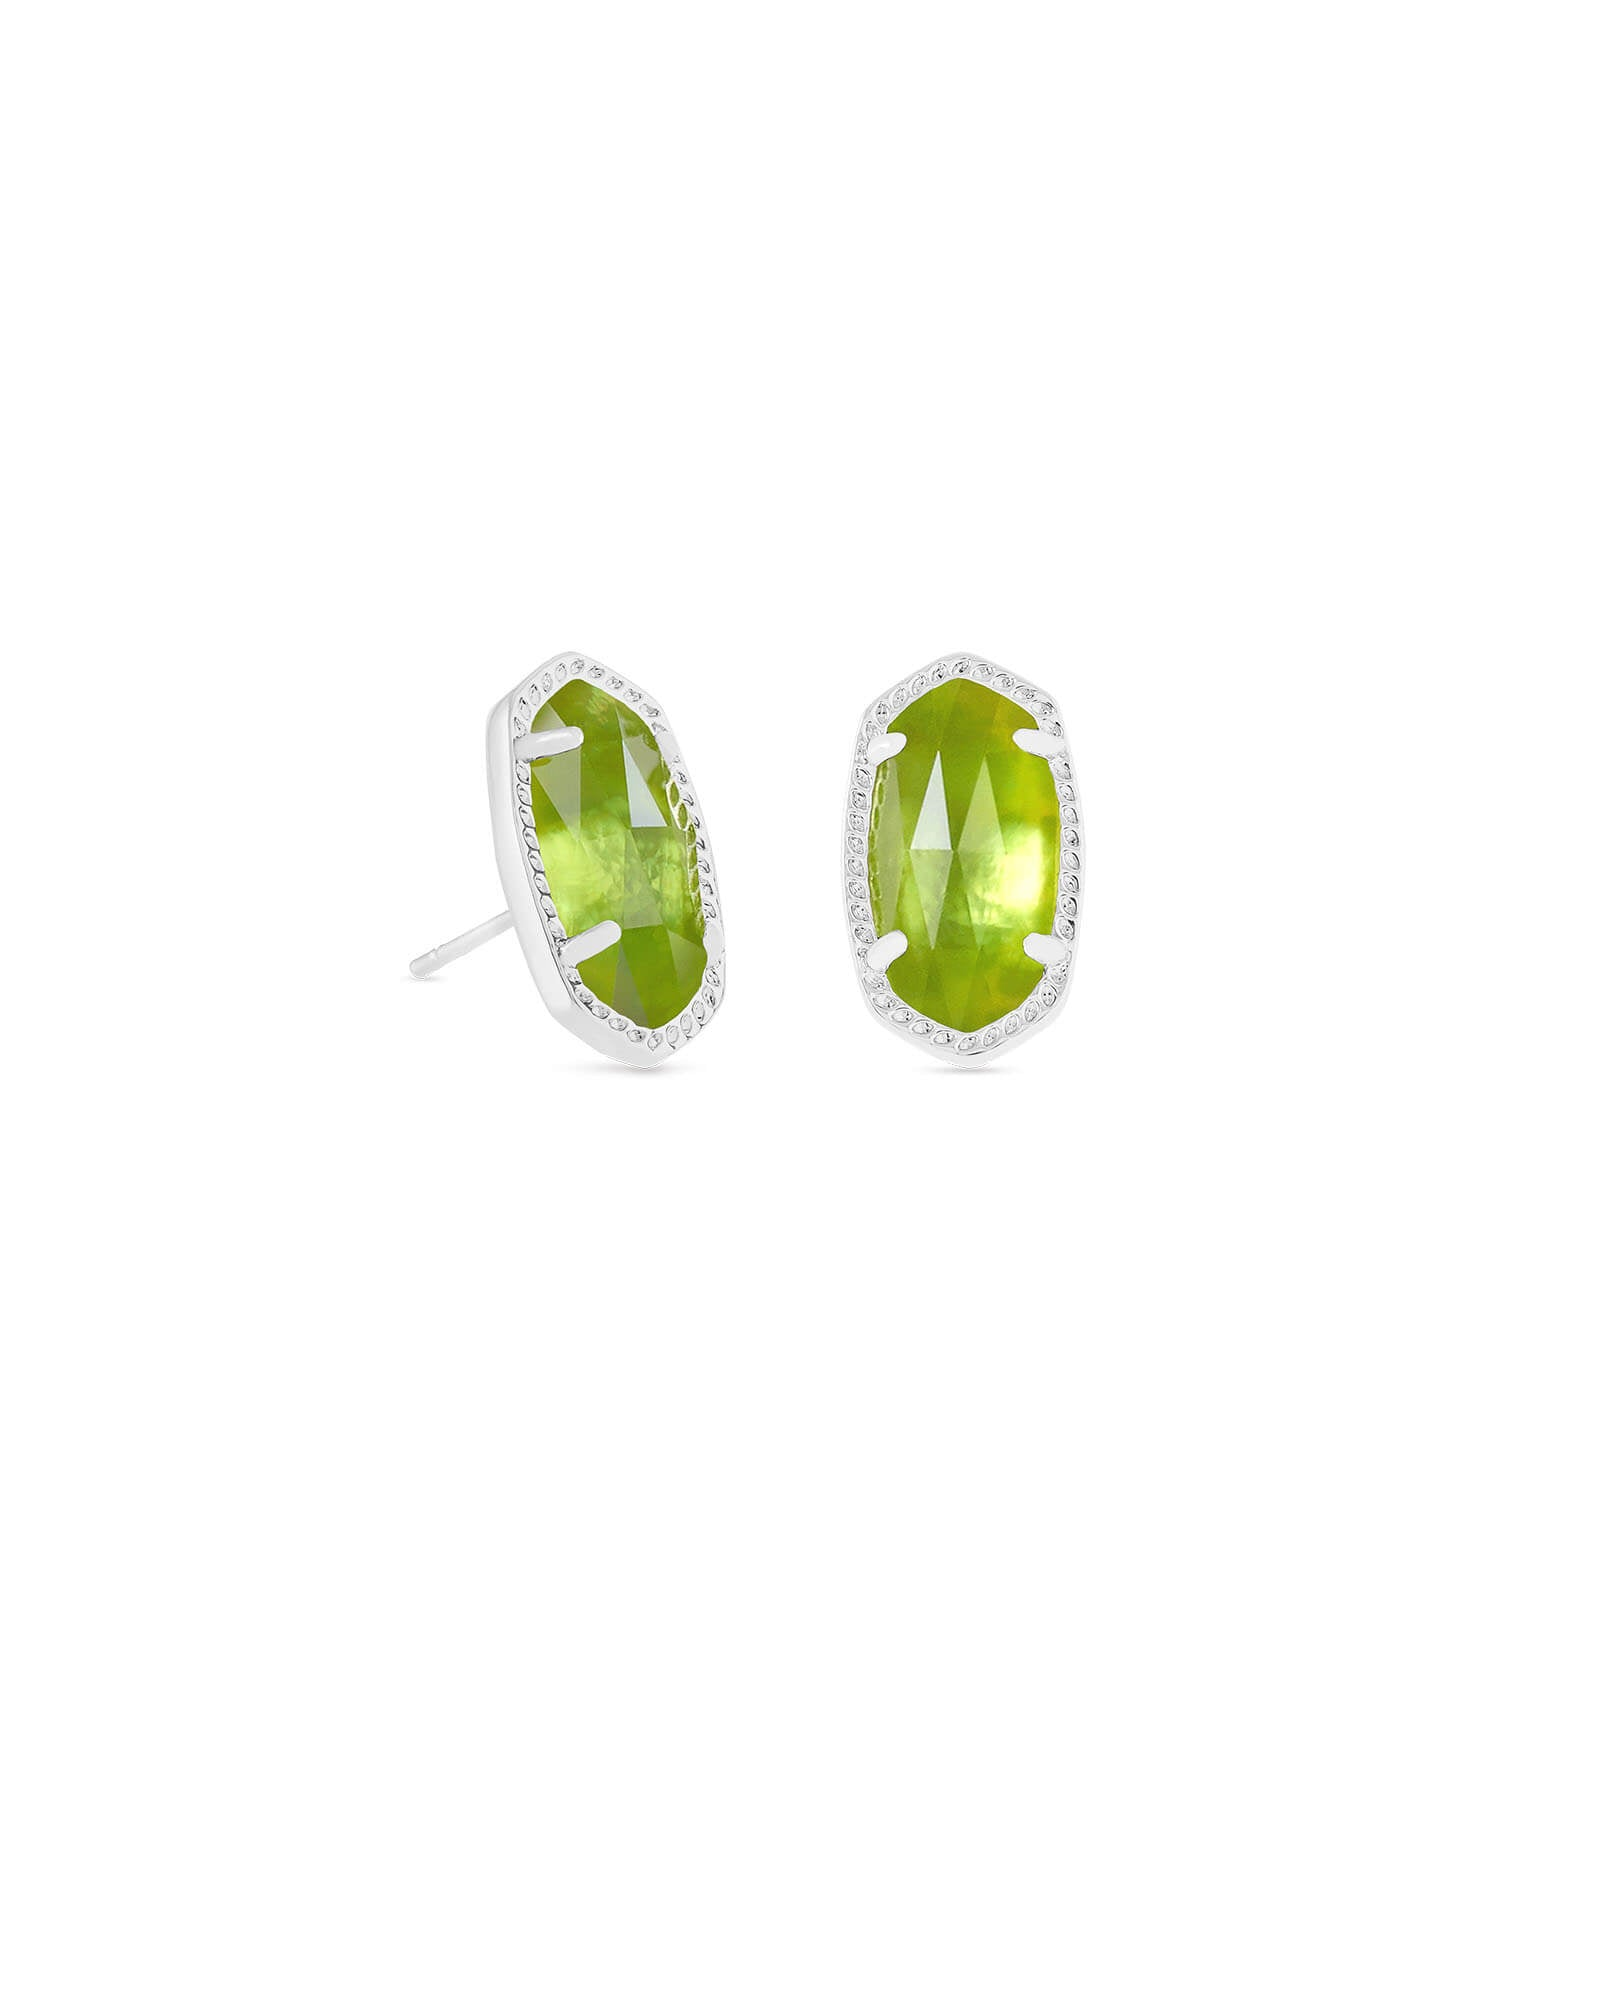 Ellie Silver Stud Earrings In Peridot Illusion